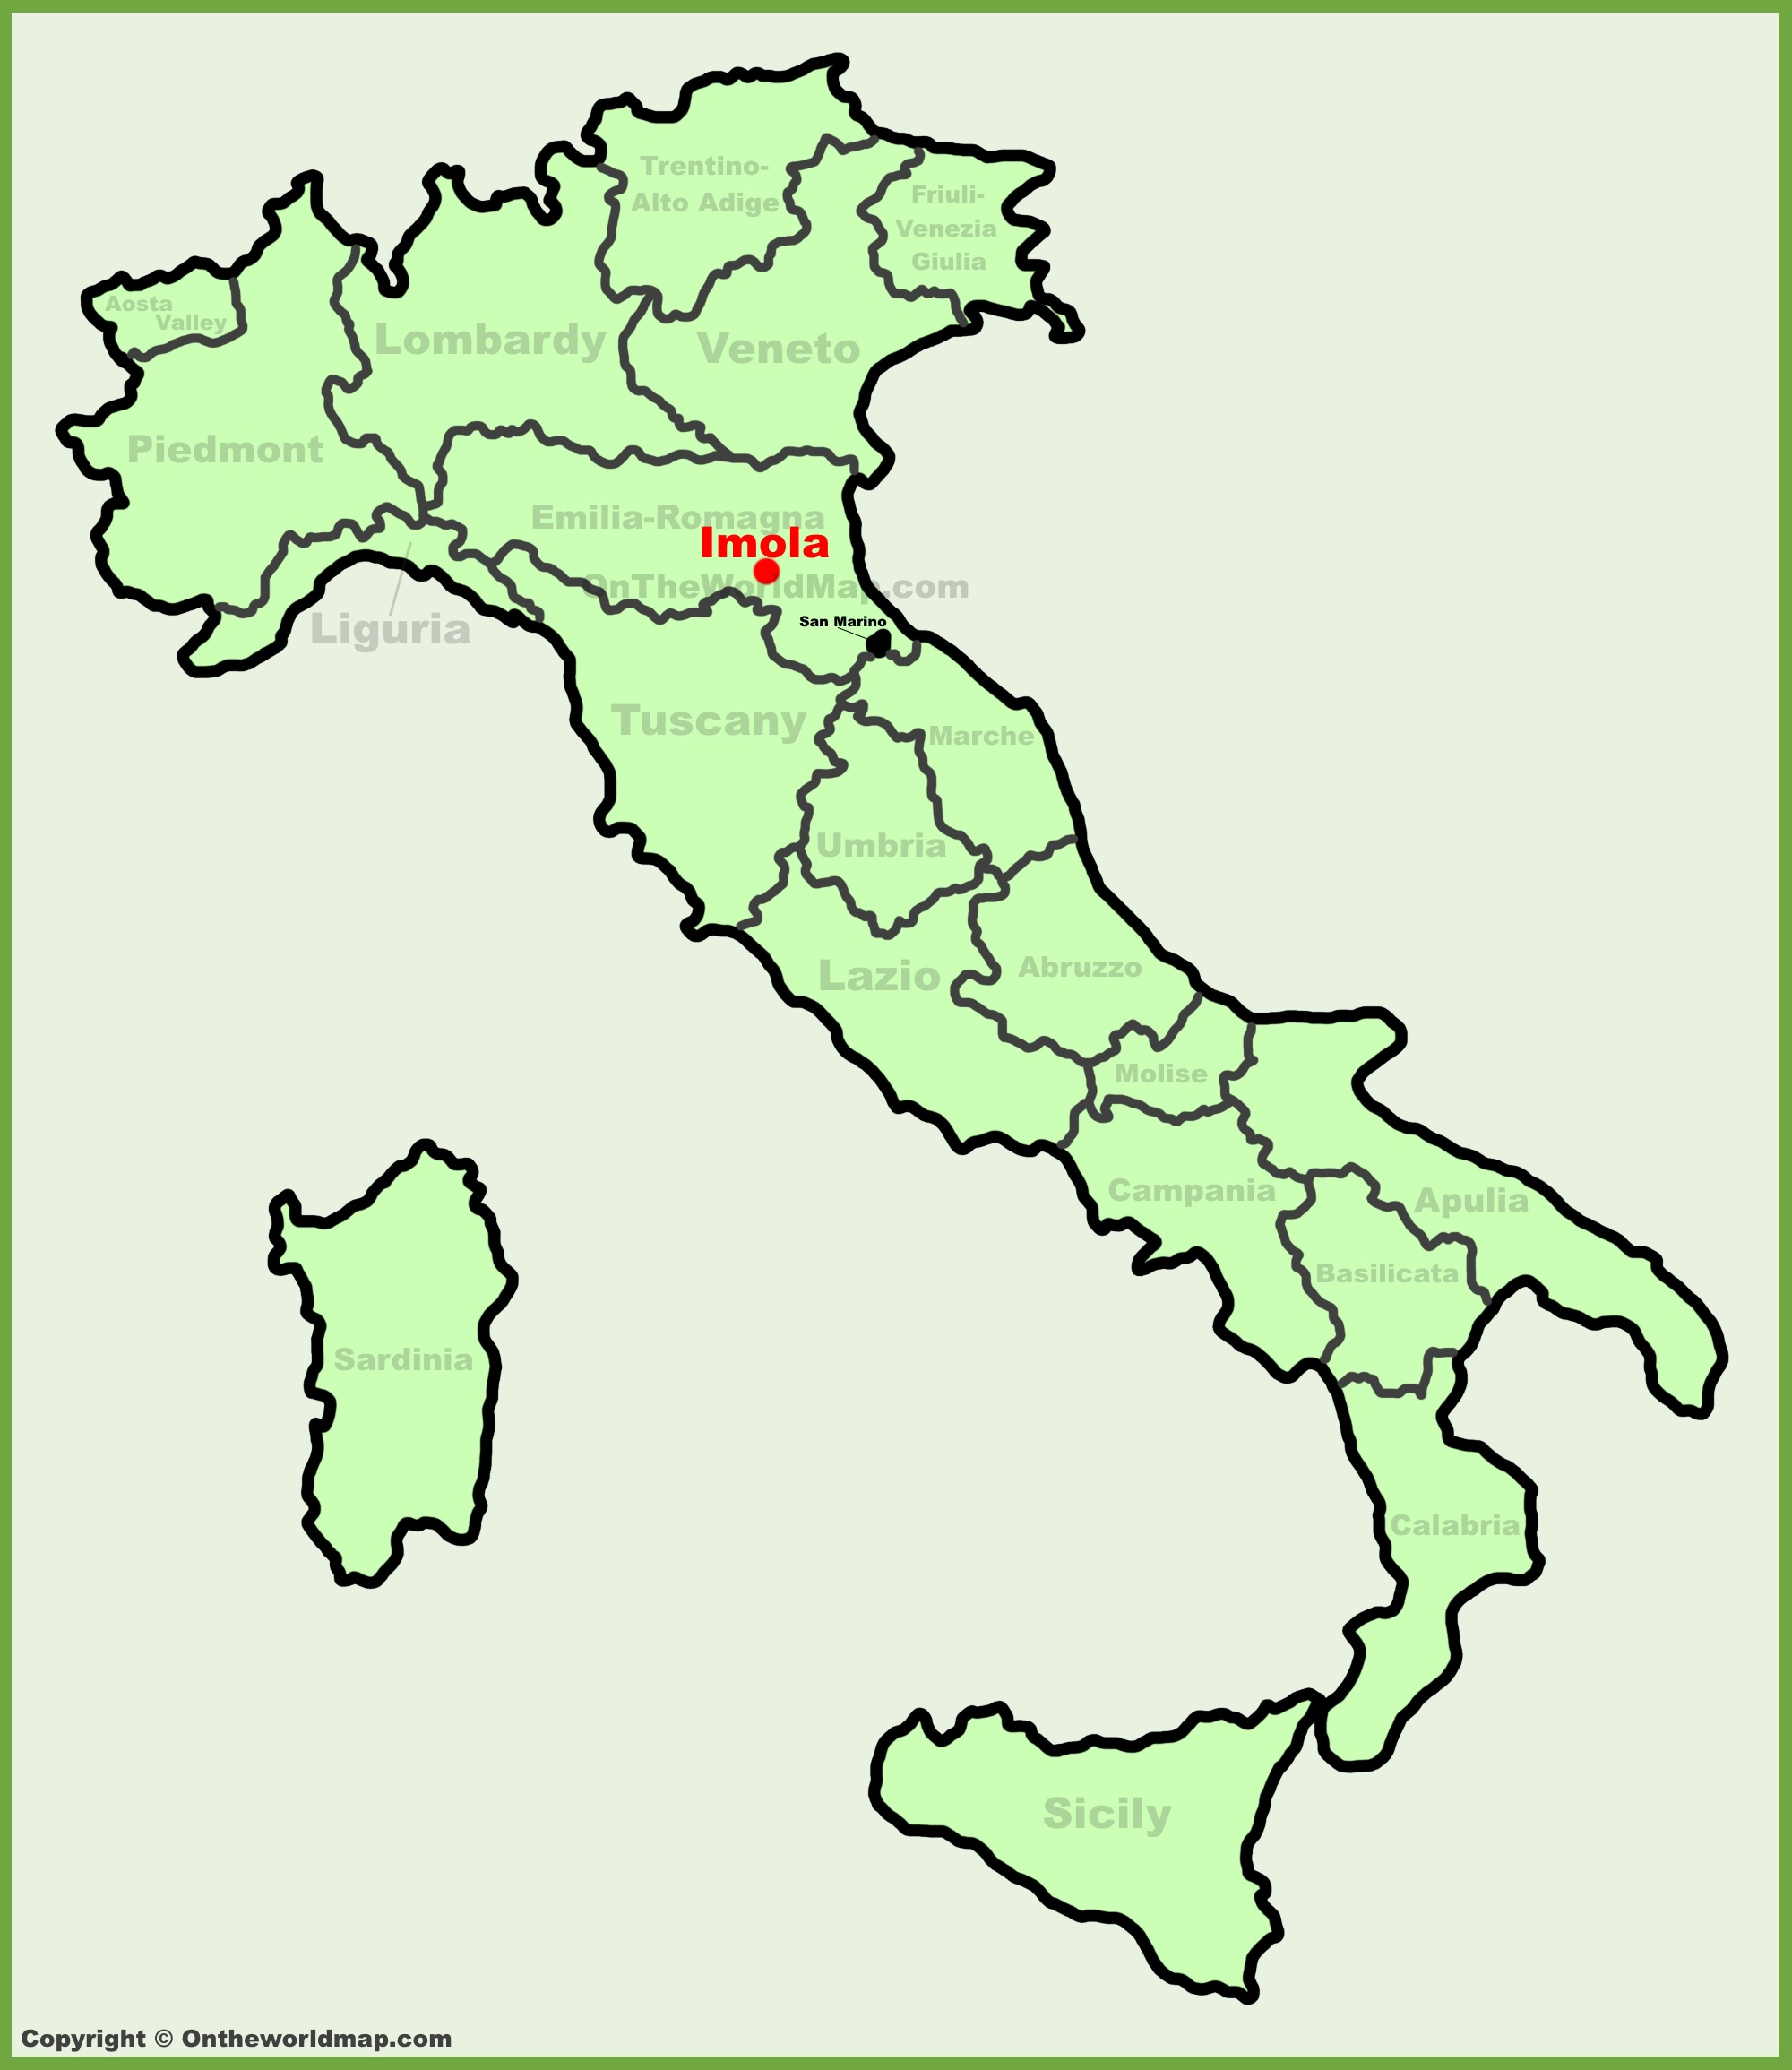 Imola location on the Italy map